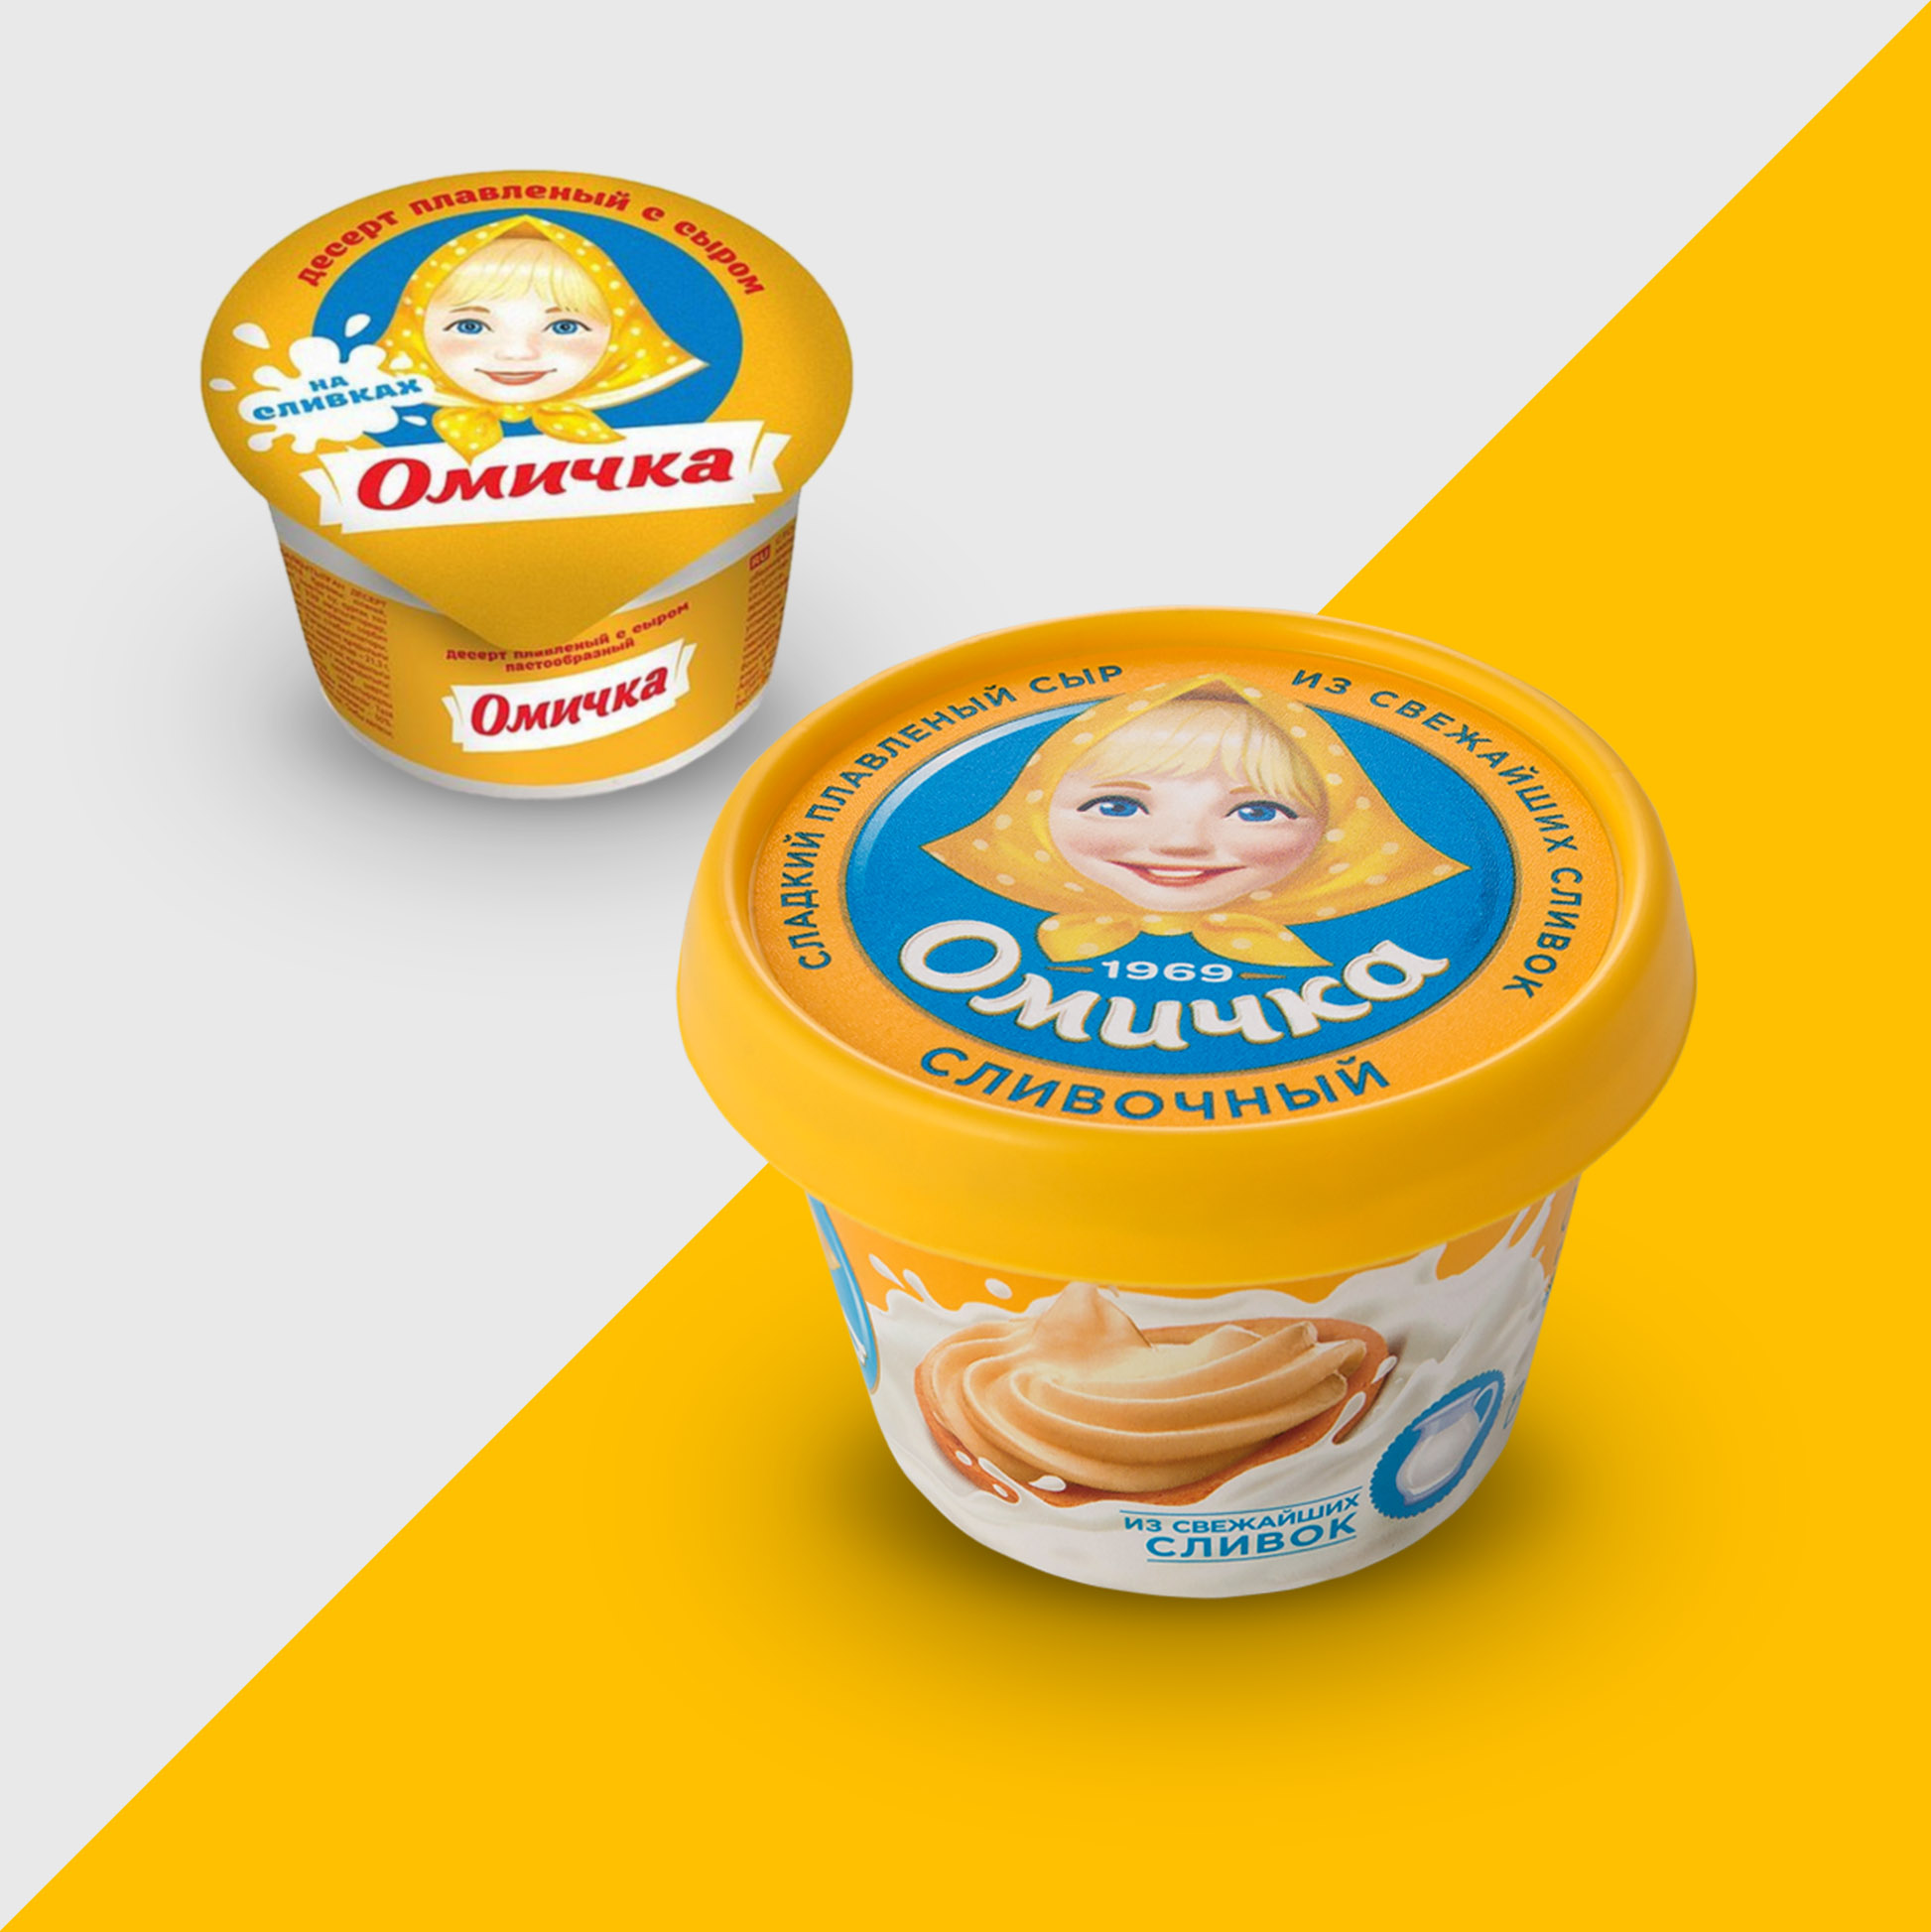 Omichka ™ Packing Design Rebranding